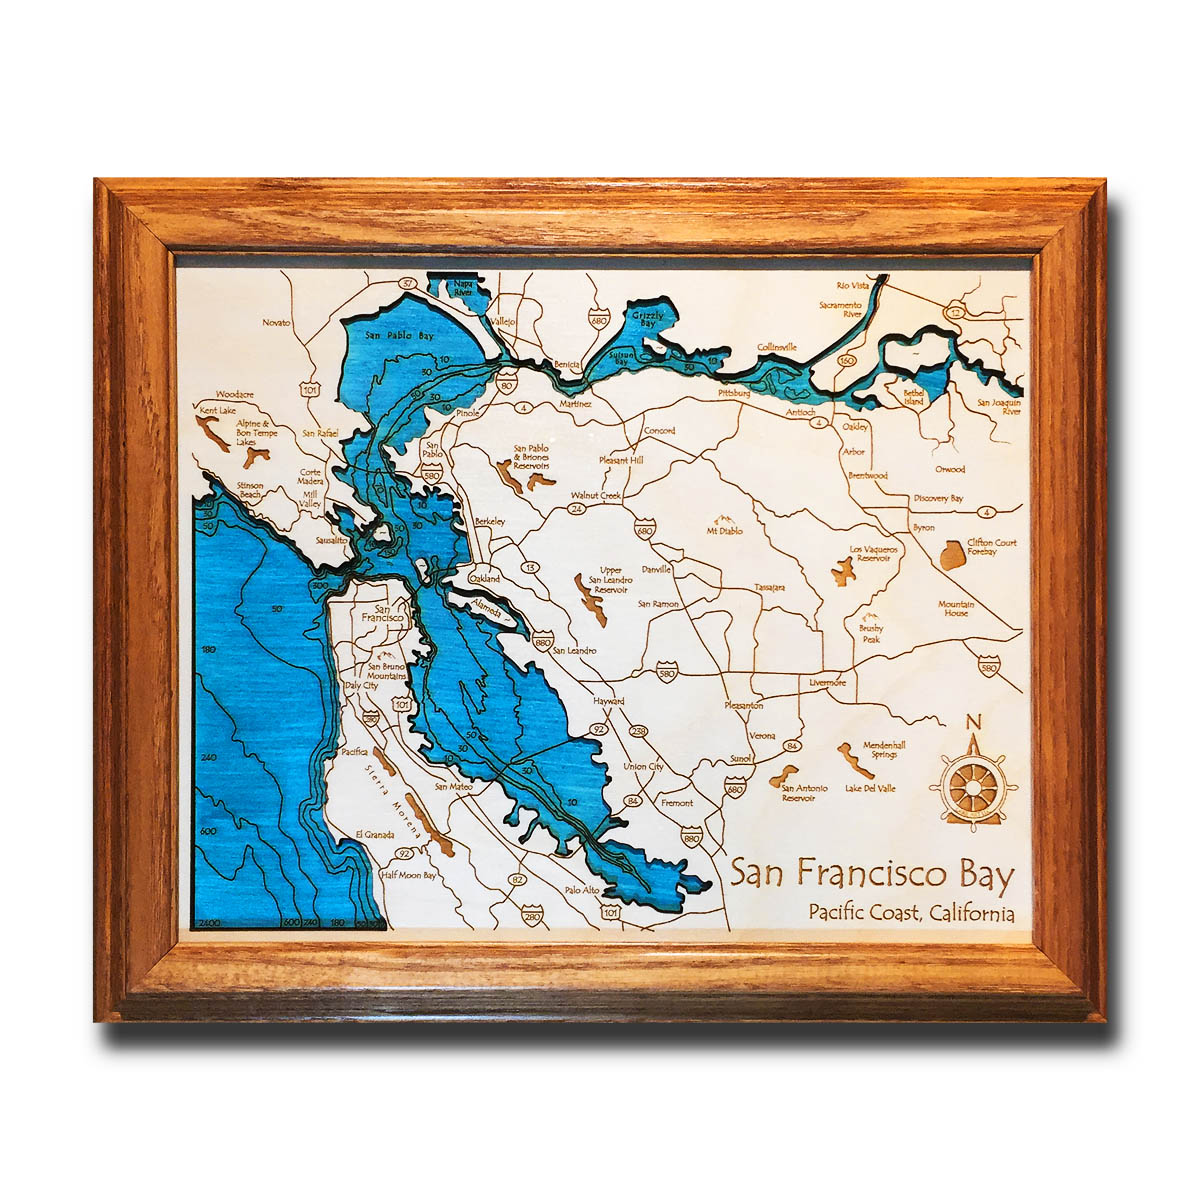 San Francisco Bay laser-etched wood map, laser-printed poster wall art